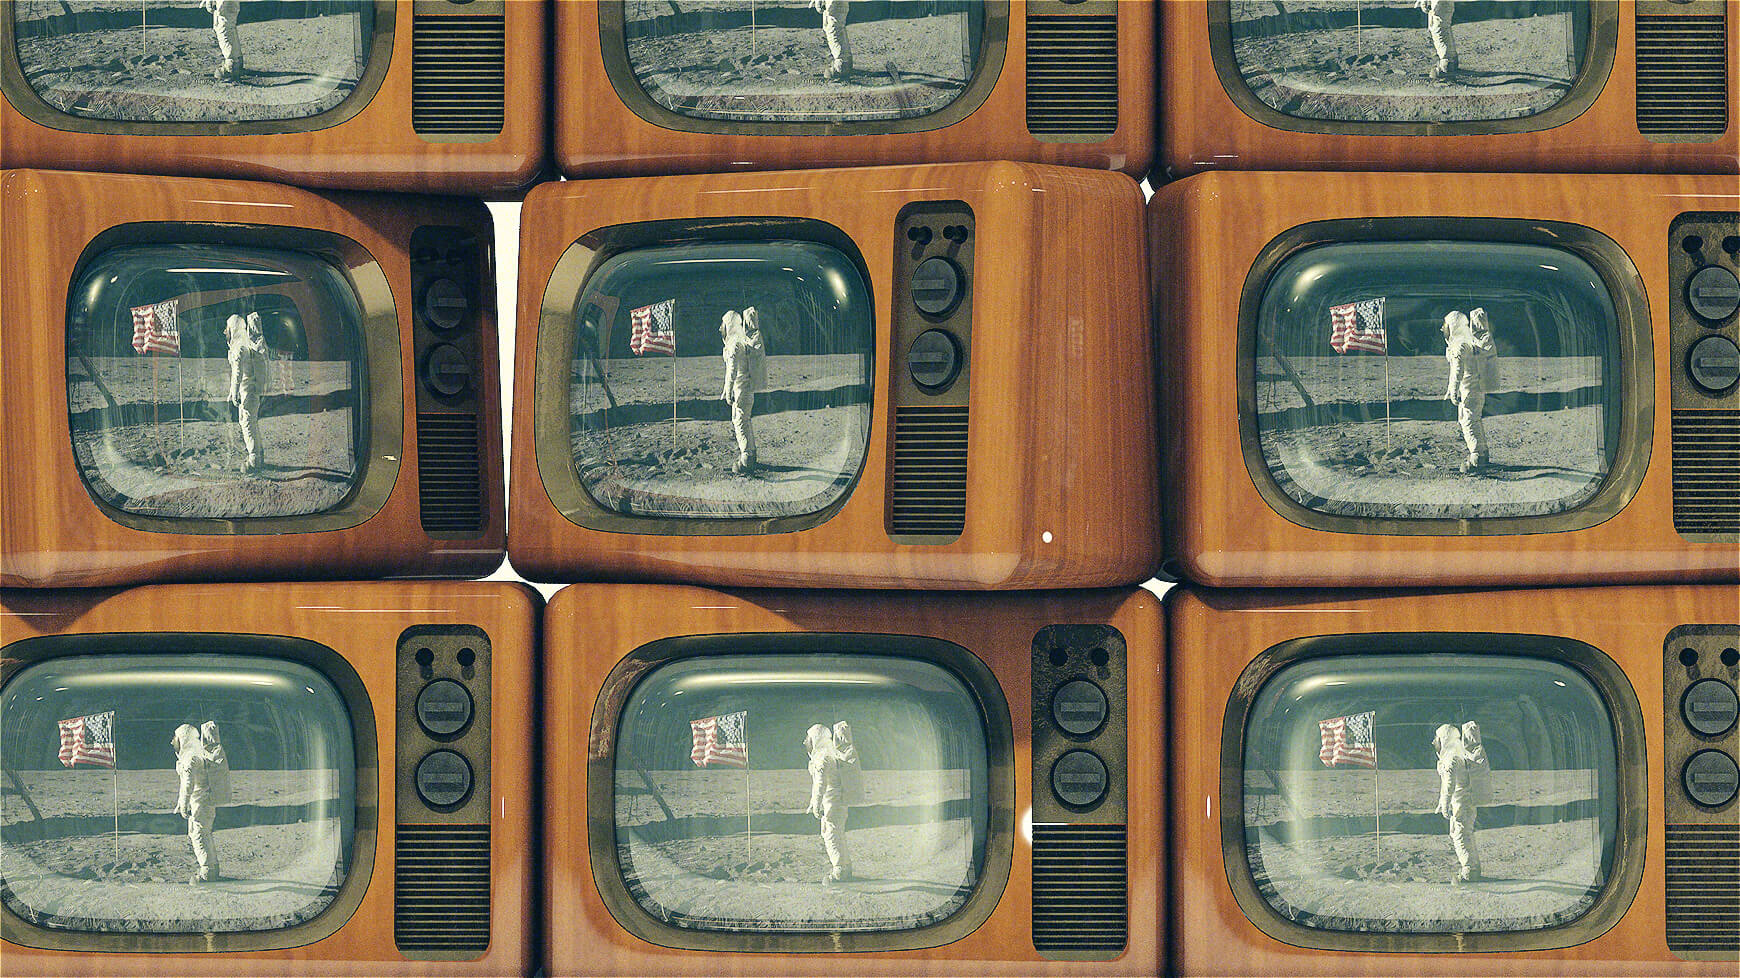 Free Cinema 4D 3D Model Vintage Television Retro